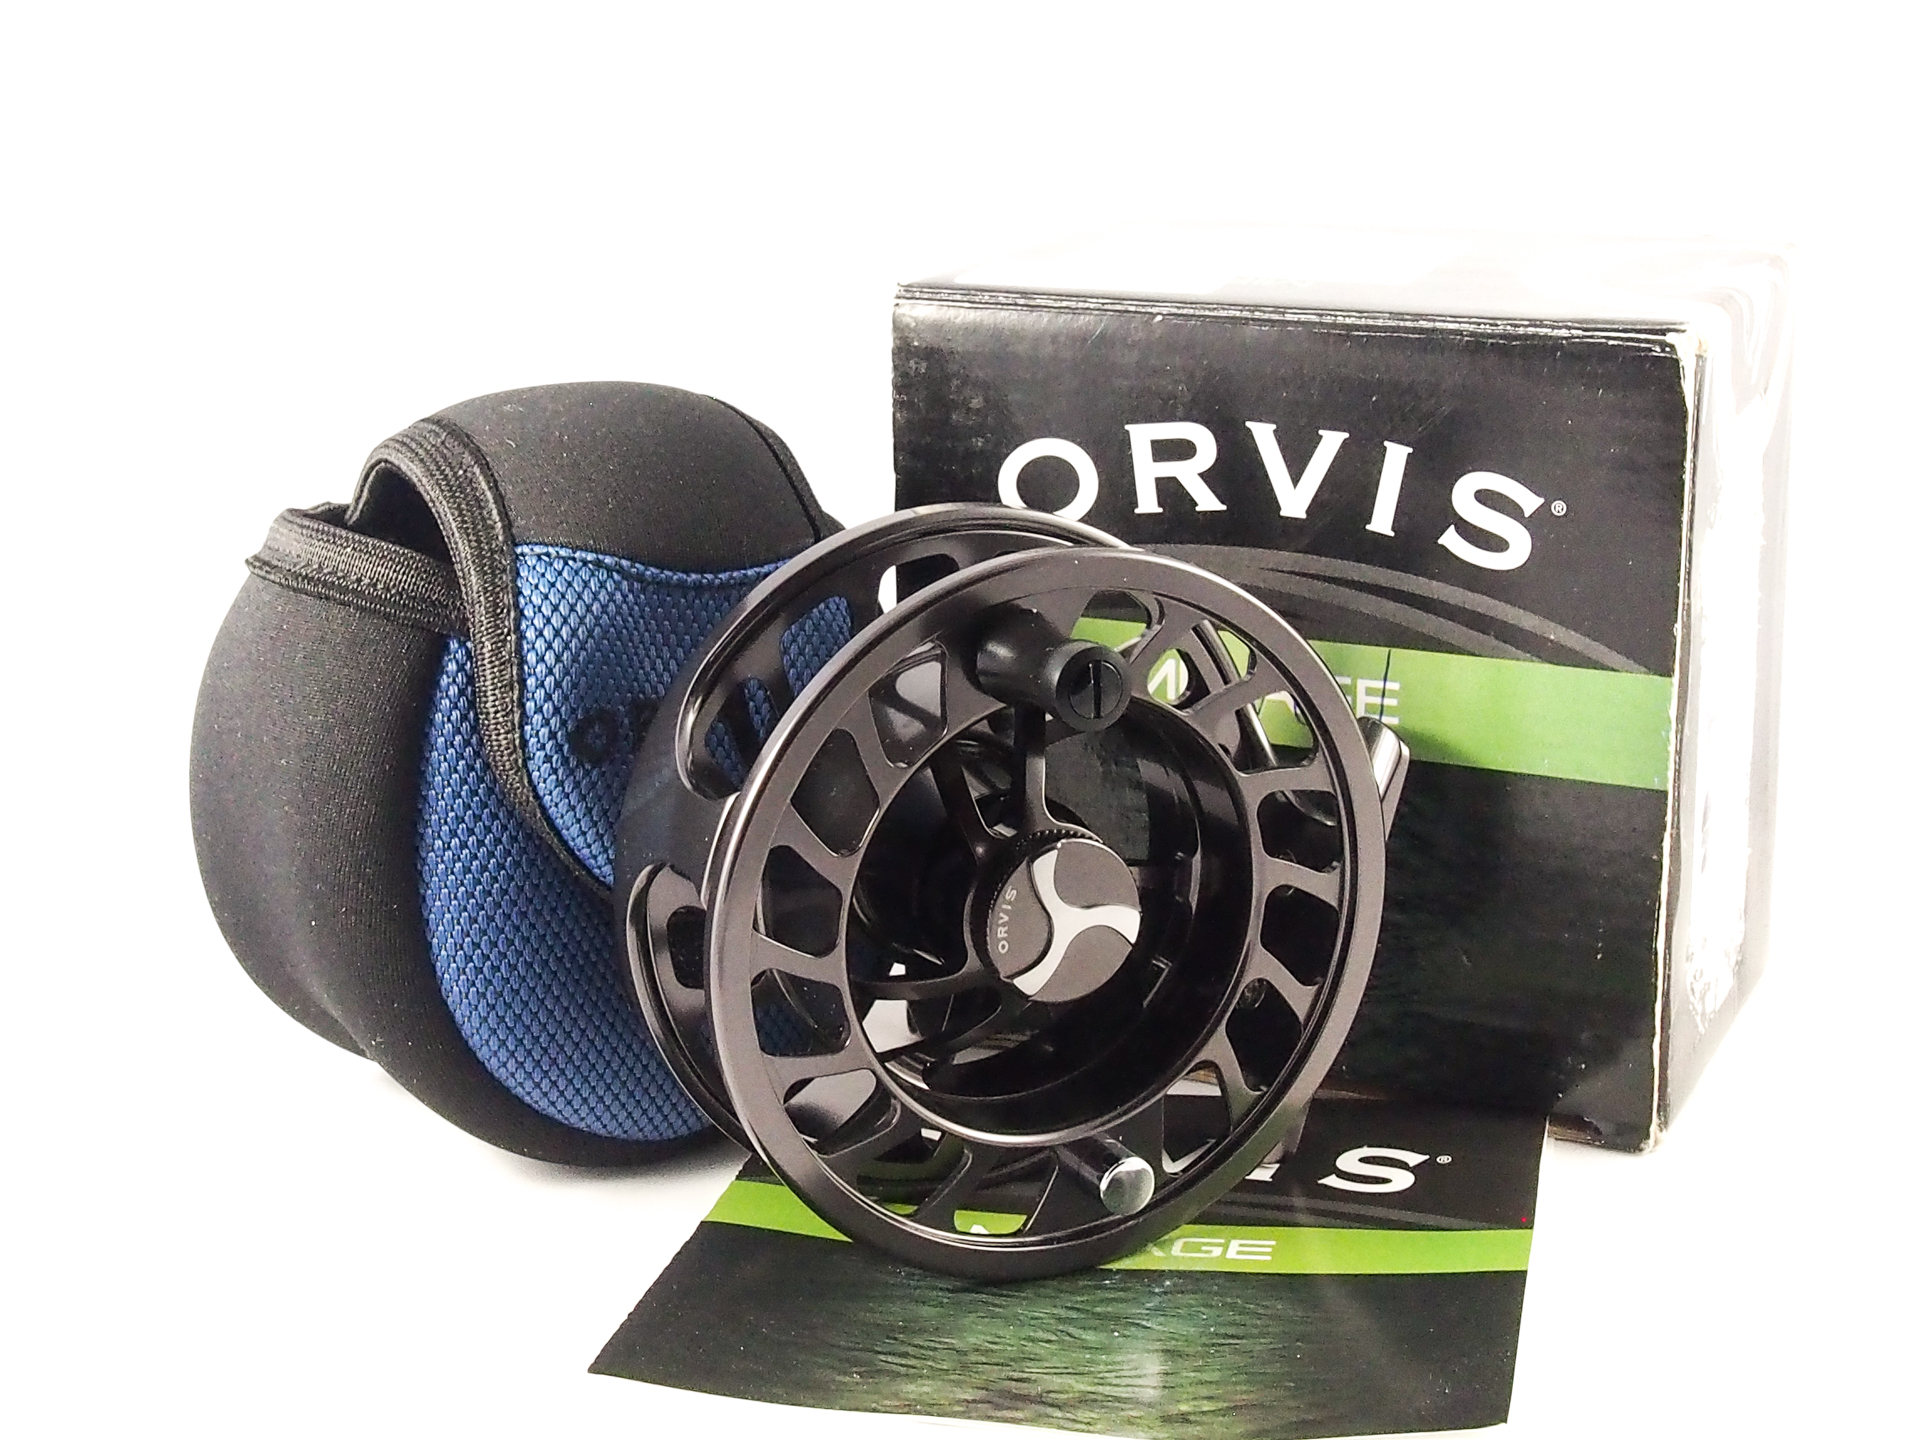 Orvis Mirage Big Game Iii 3 3 4 Trout Fly Reel